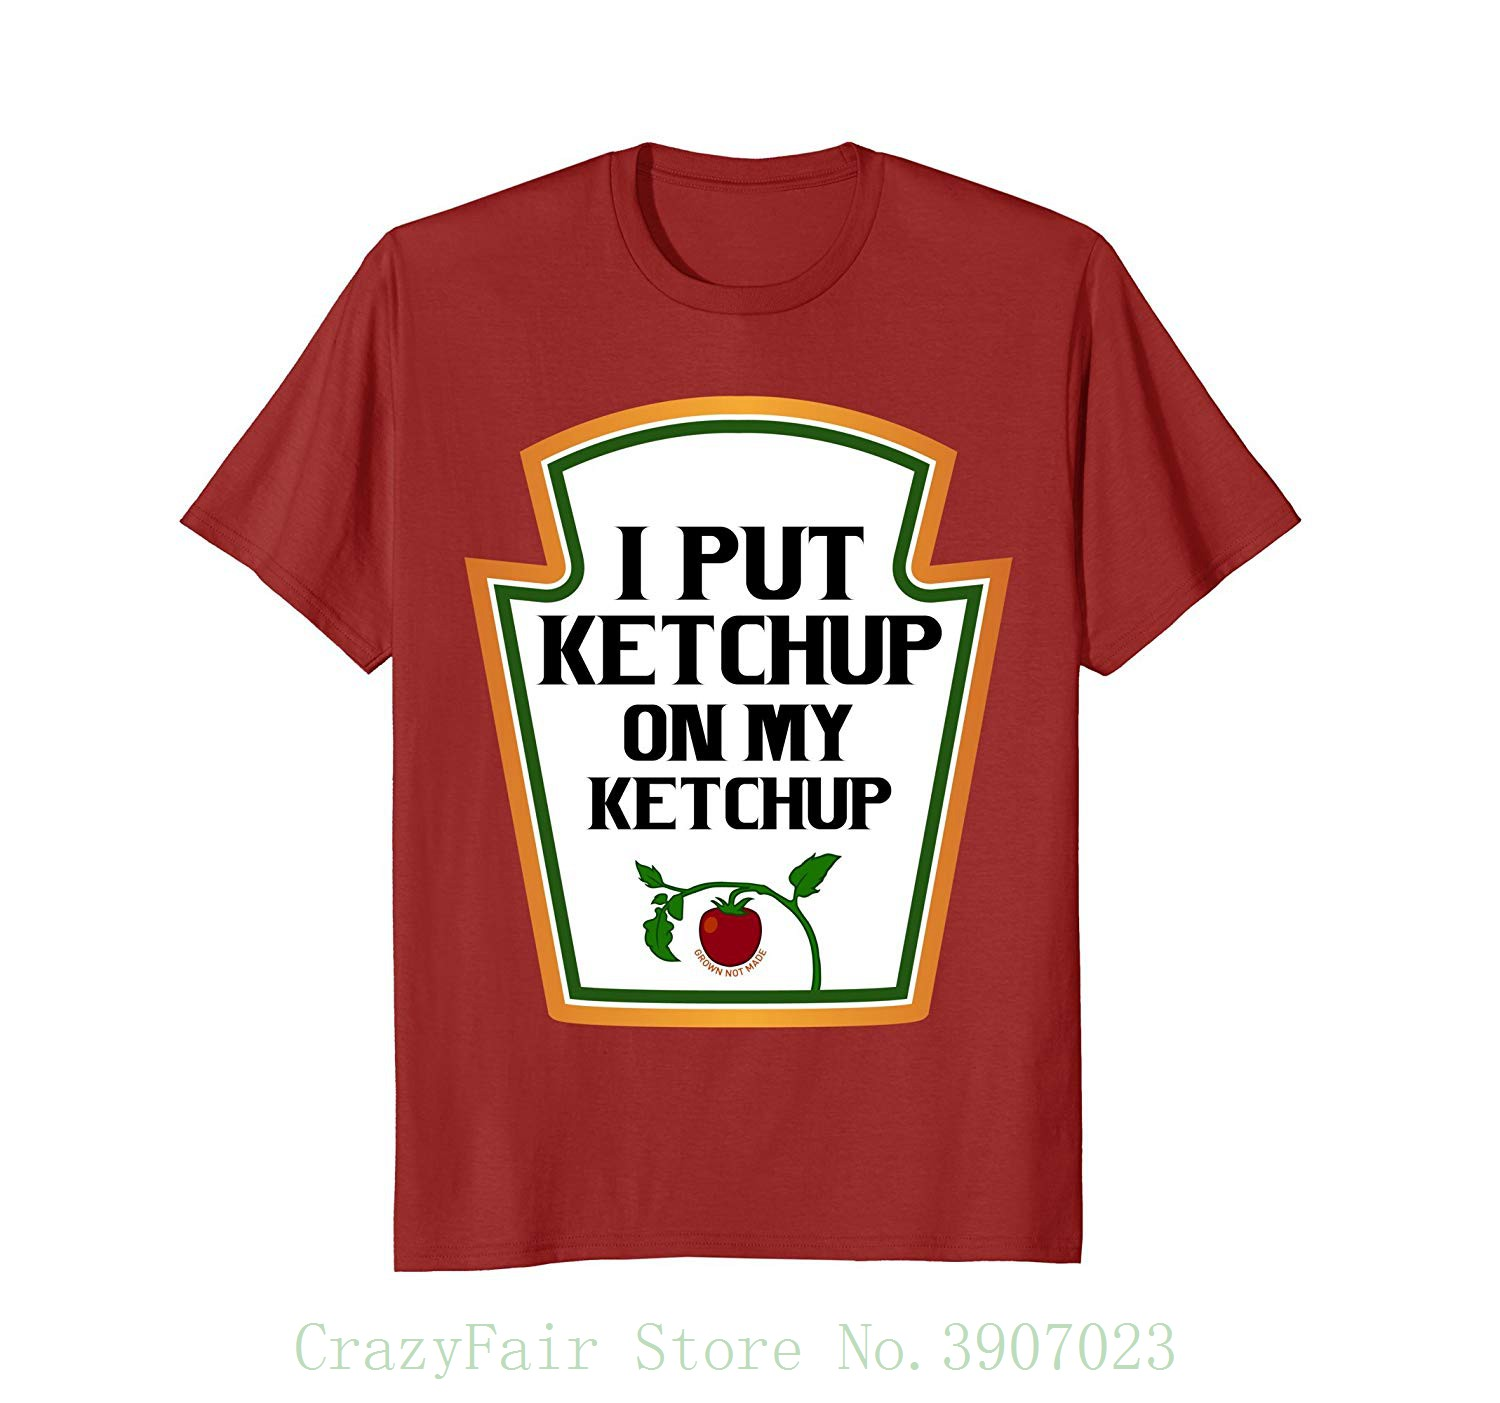 ccbc010d7 Buy t shirt no ketchup and get free shipping on AliExpress.com